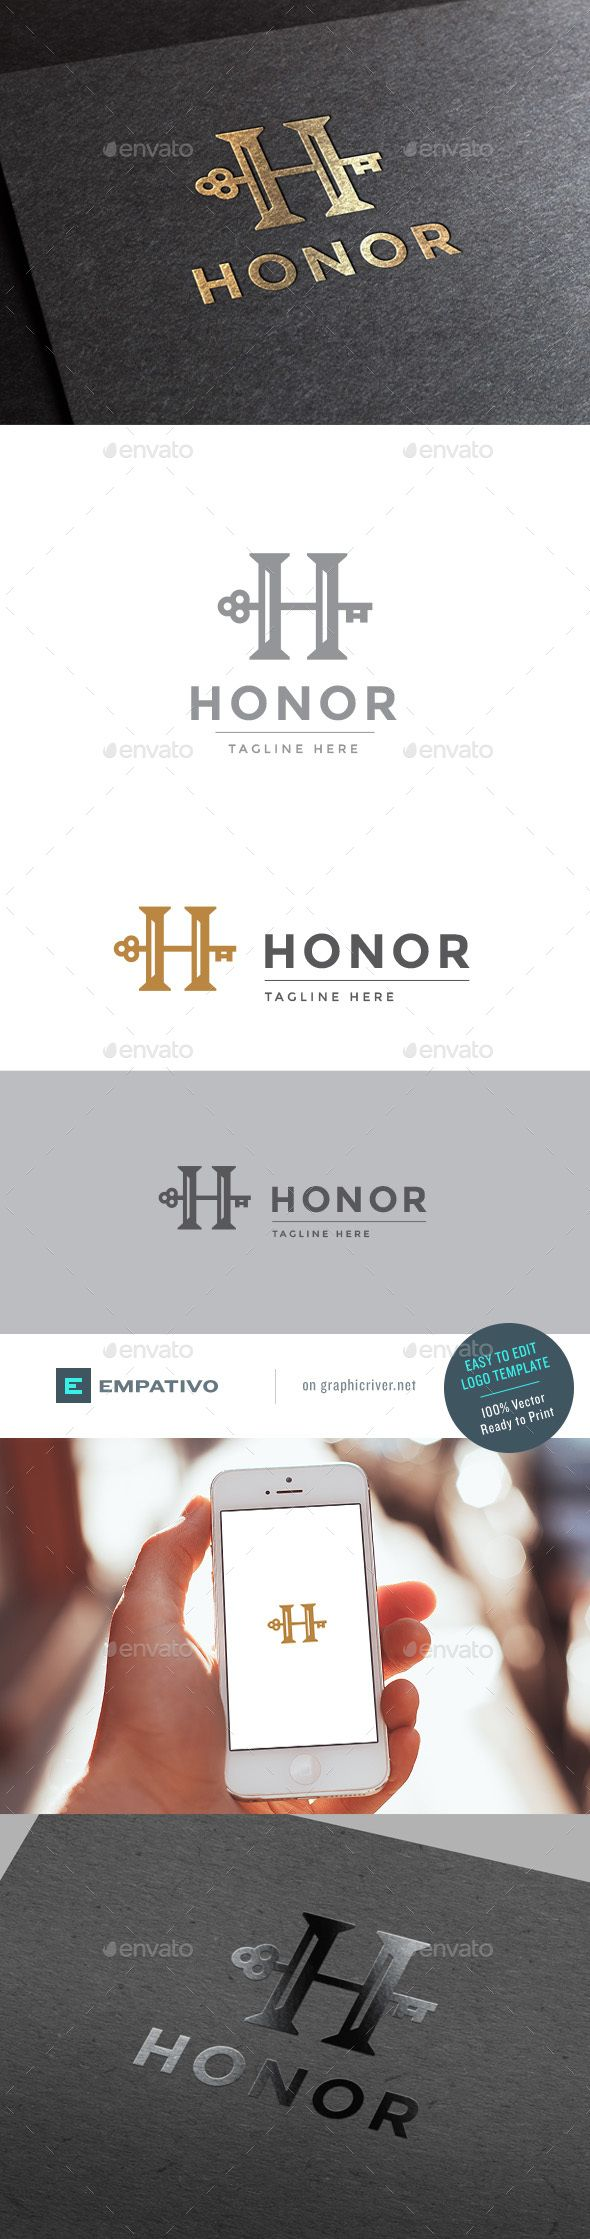 Honor Letter H Logo Template  #trade consultant #trust #unique • Available here → http://graphicriver.net/item/honor-letter-h-logo-template/15679033?s_rank=202&ref=pxcr